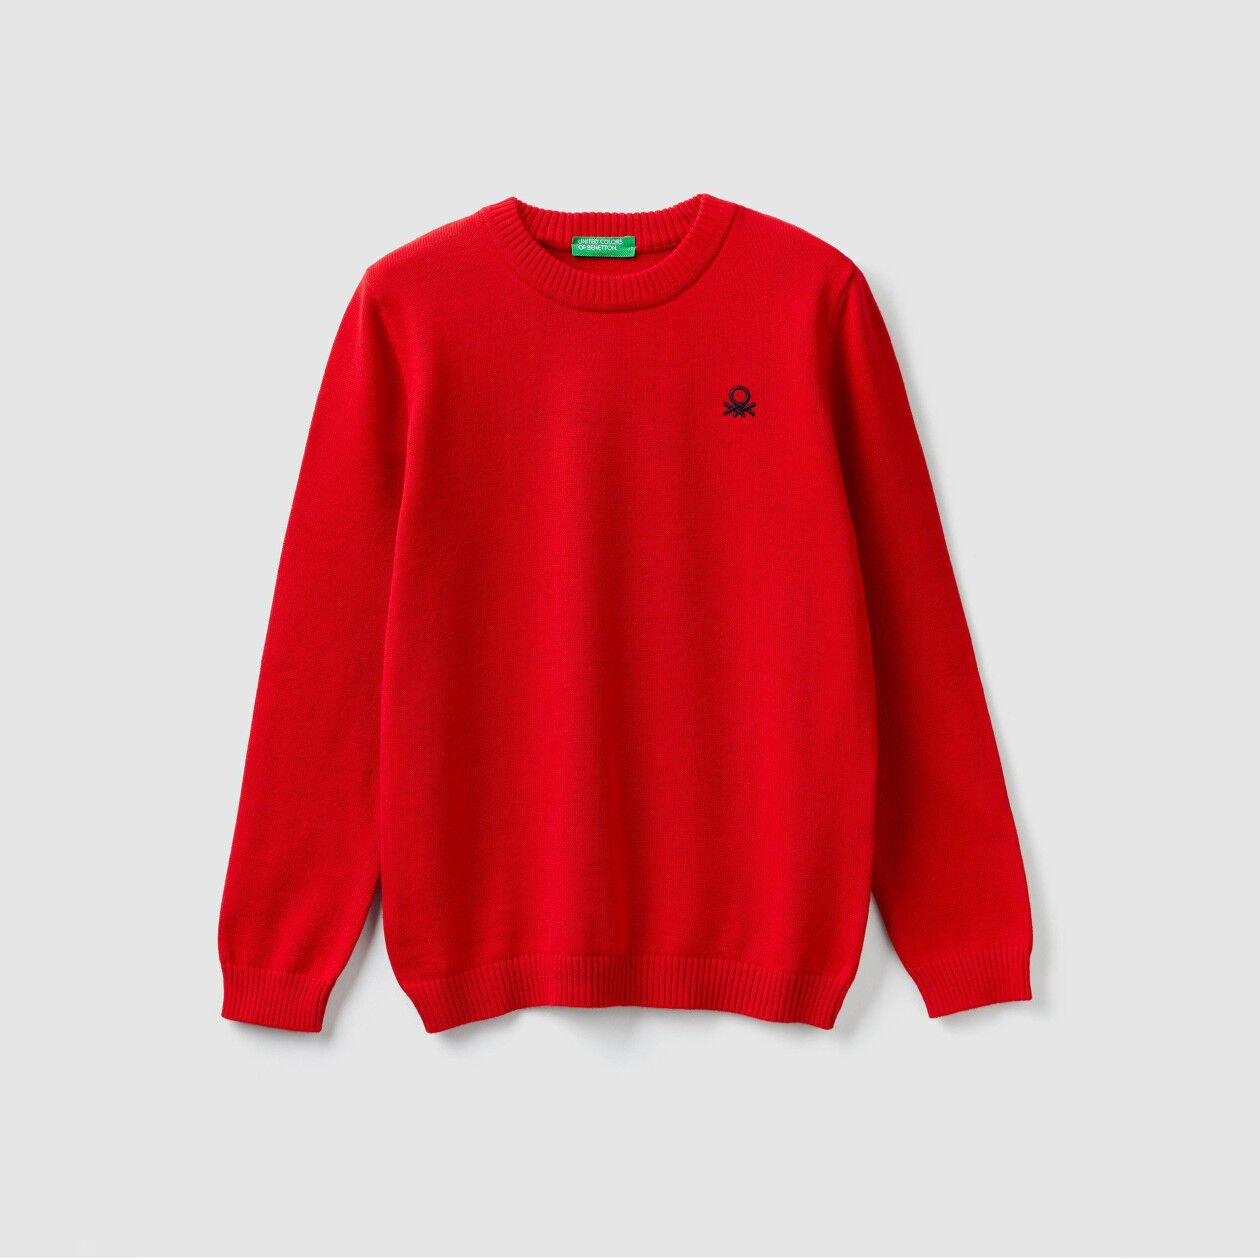 Cotton sweater with logo